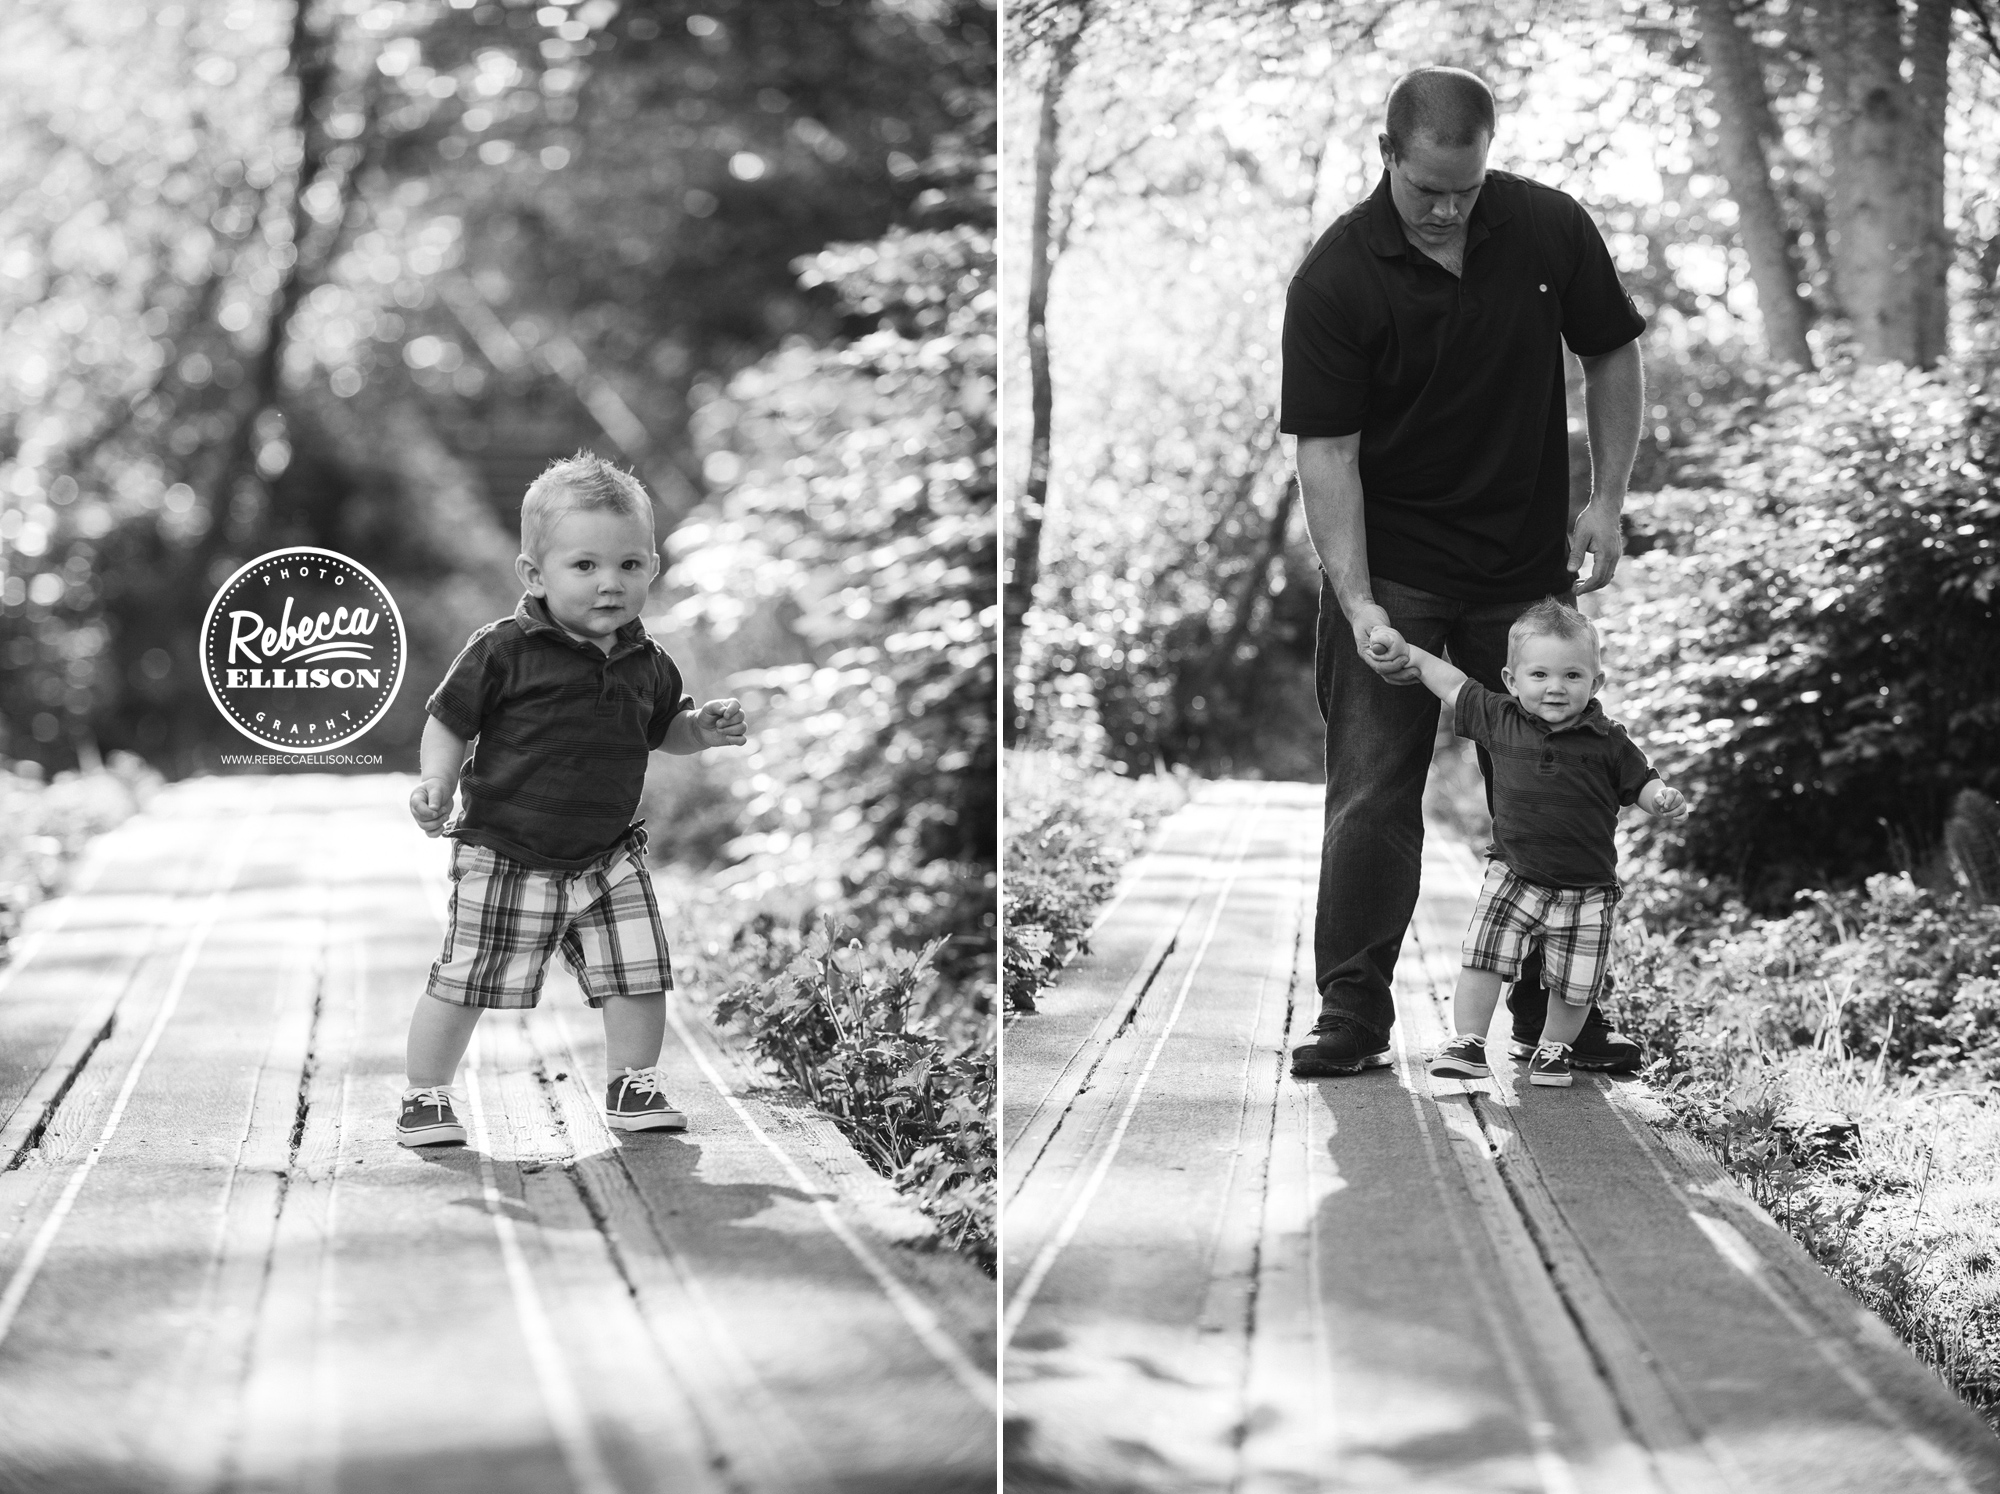 Father and son play at Howarth Park in Everett photographed by family photographer Rebecca Ellison